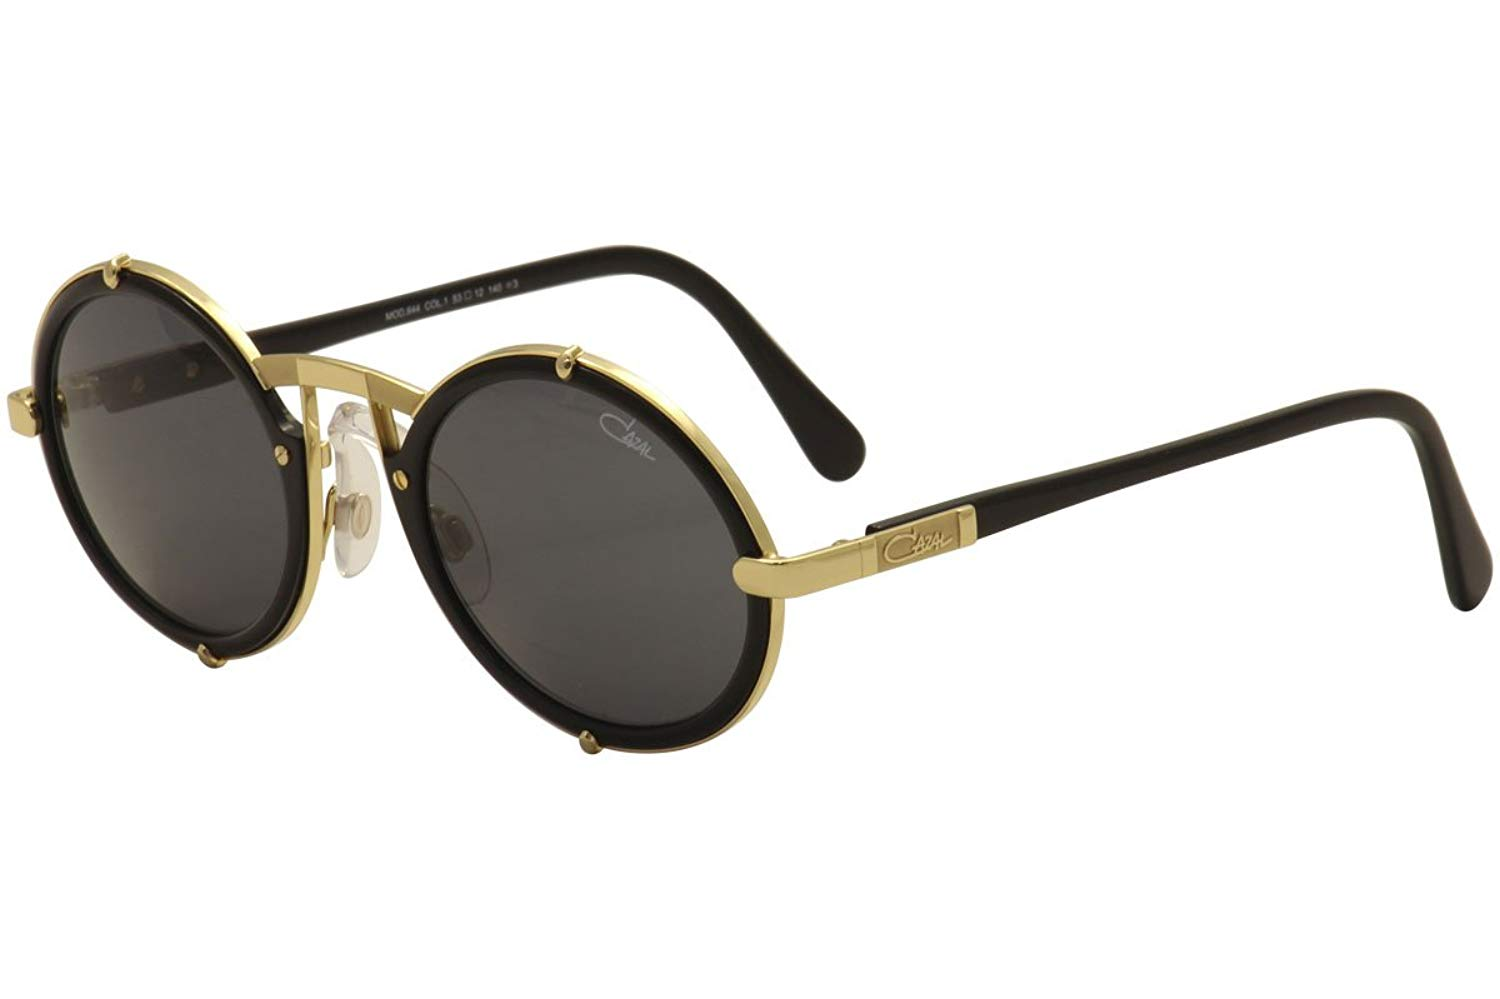 d246dff3be72 Buy Cazal Legends 185 Sunglasses in Crystal in Cheap Price on ...